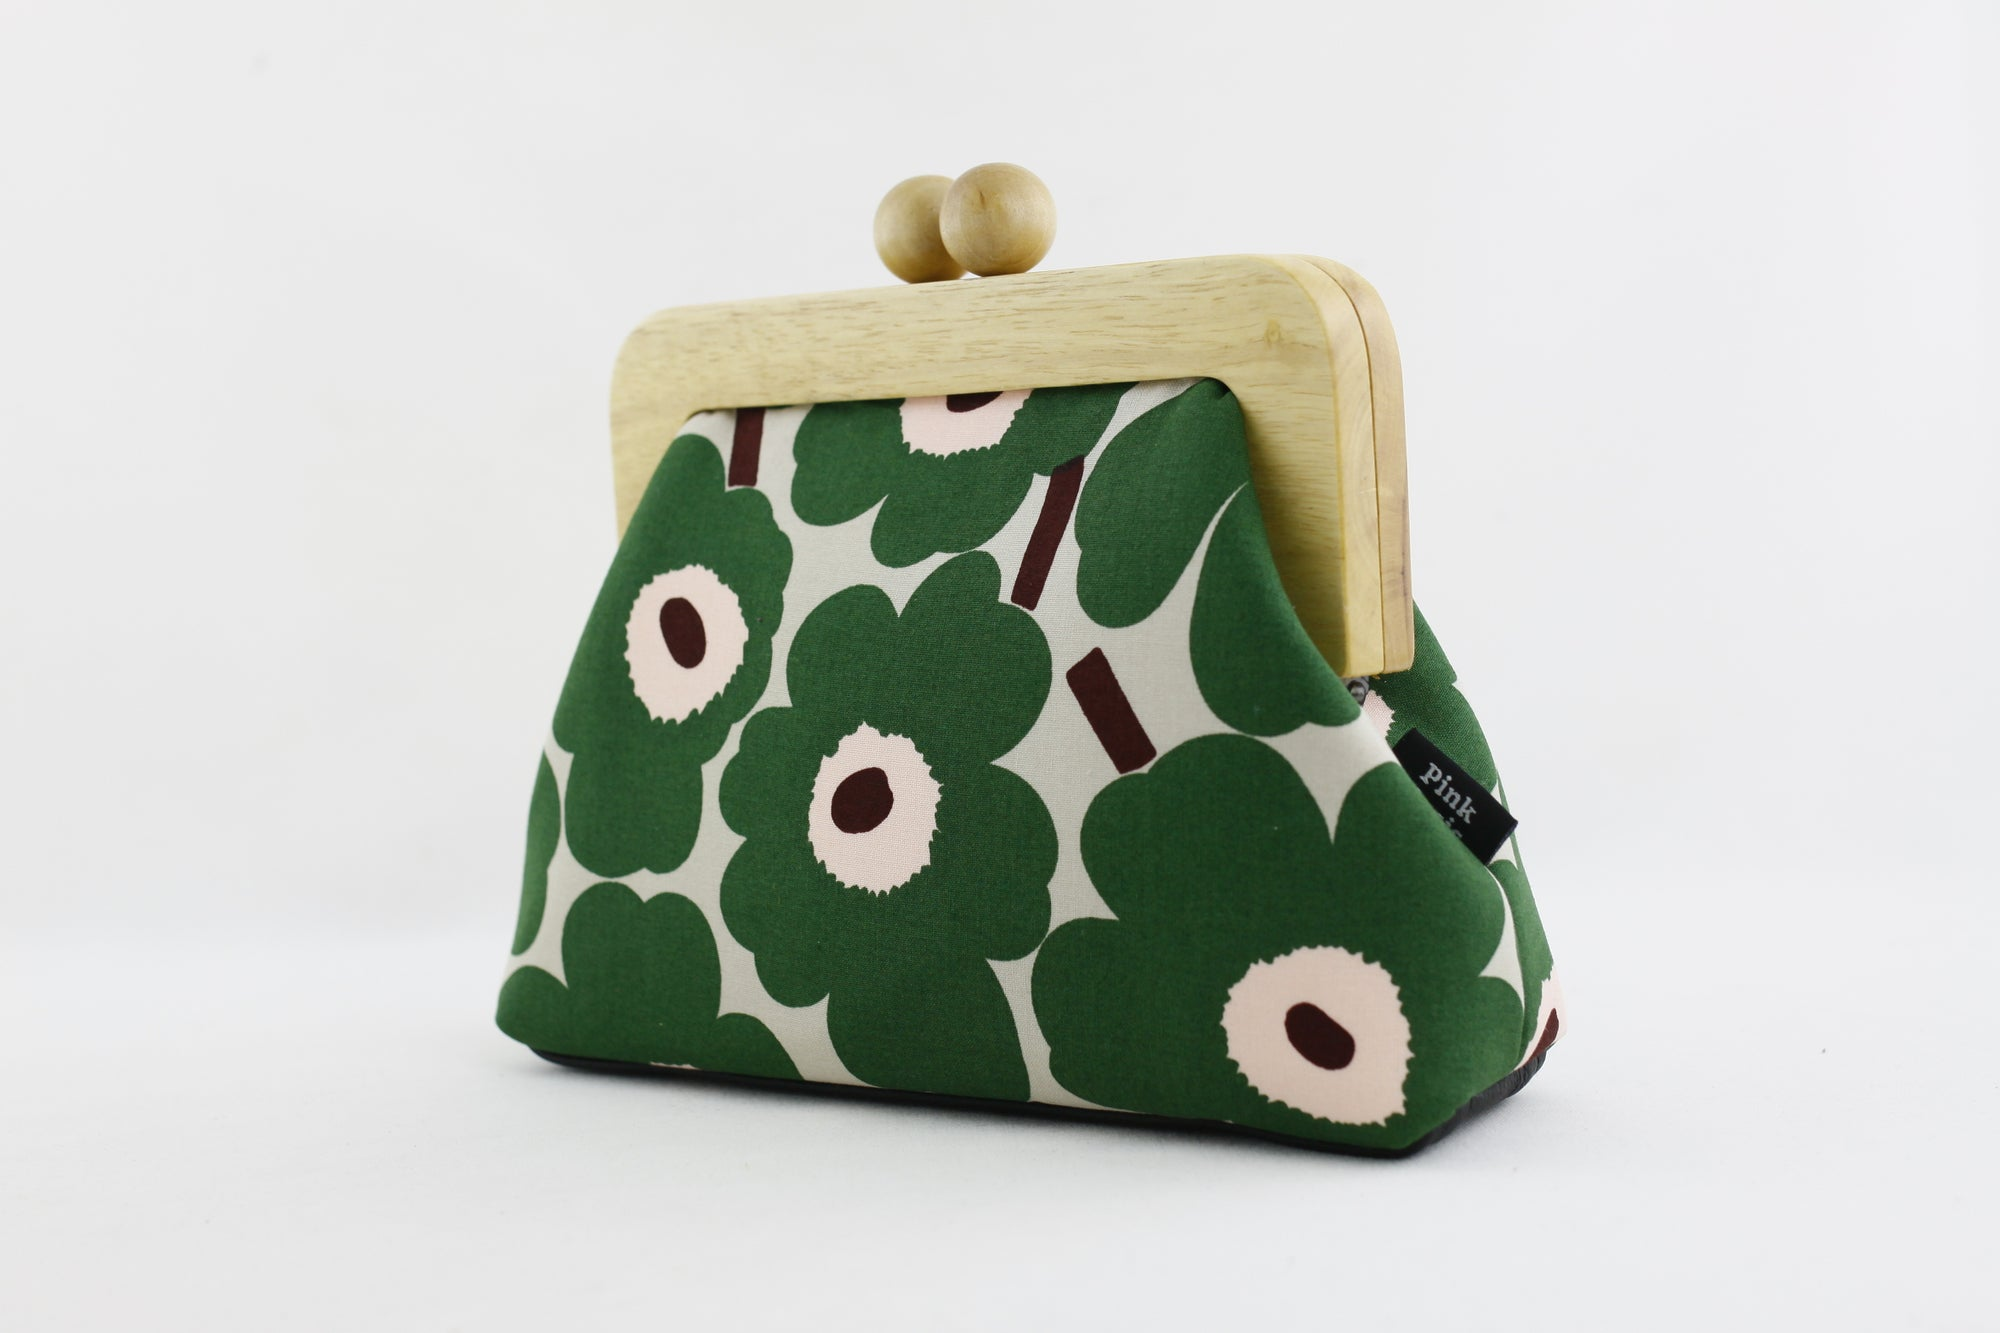 Marimekko Unikko Poppy Green Clutch Bag with Leather Strap | PINKOASIS